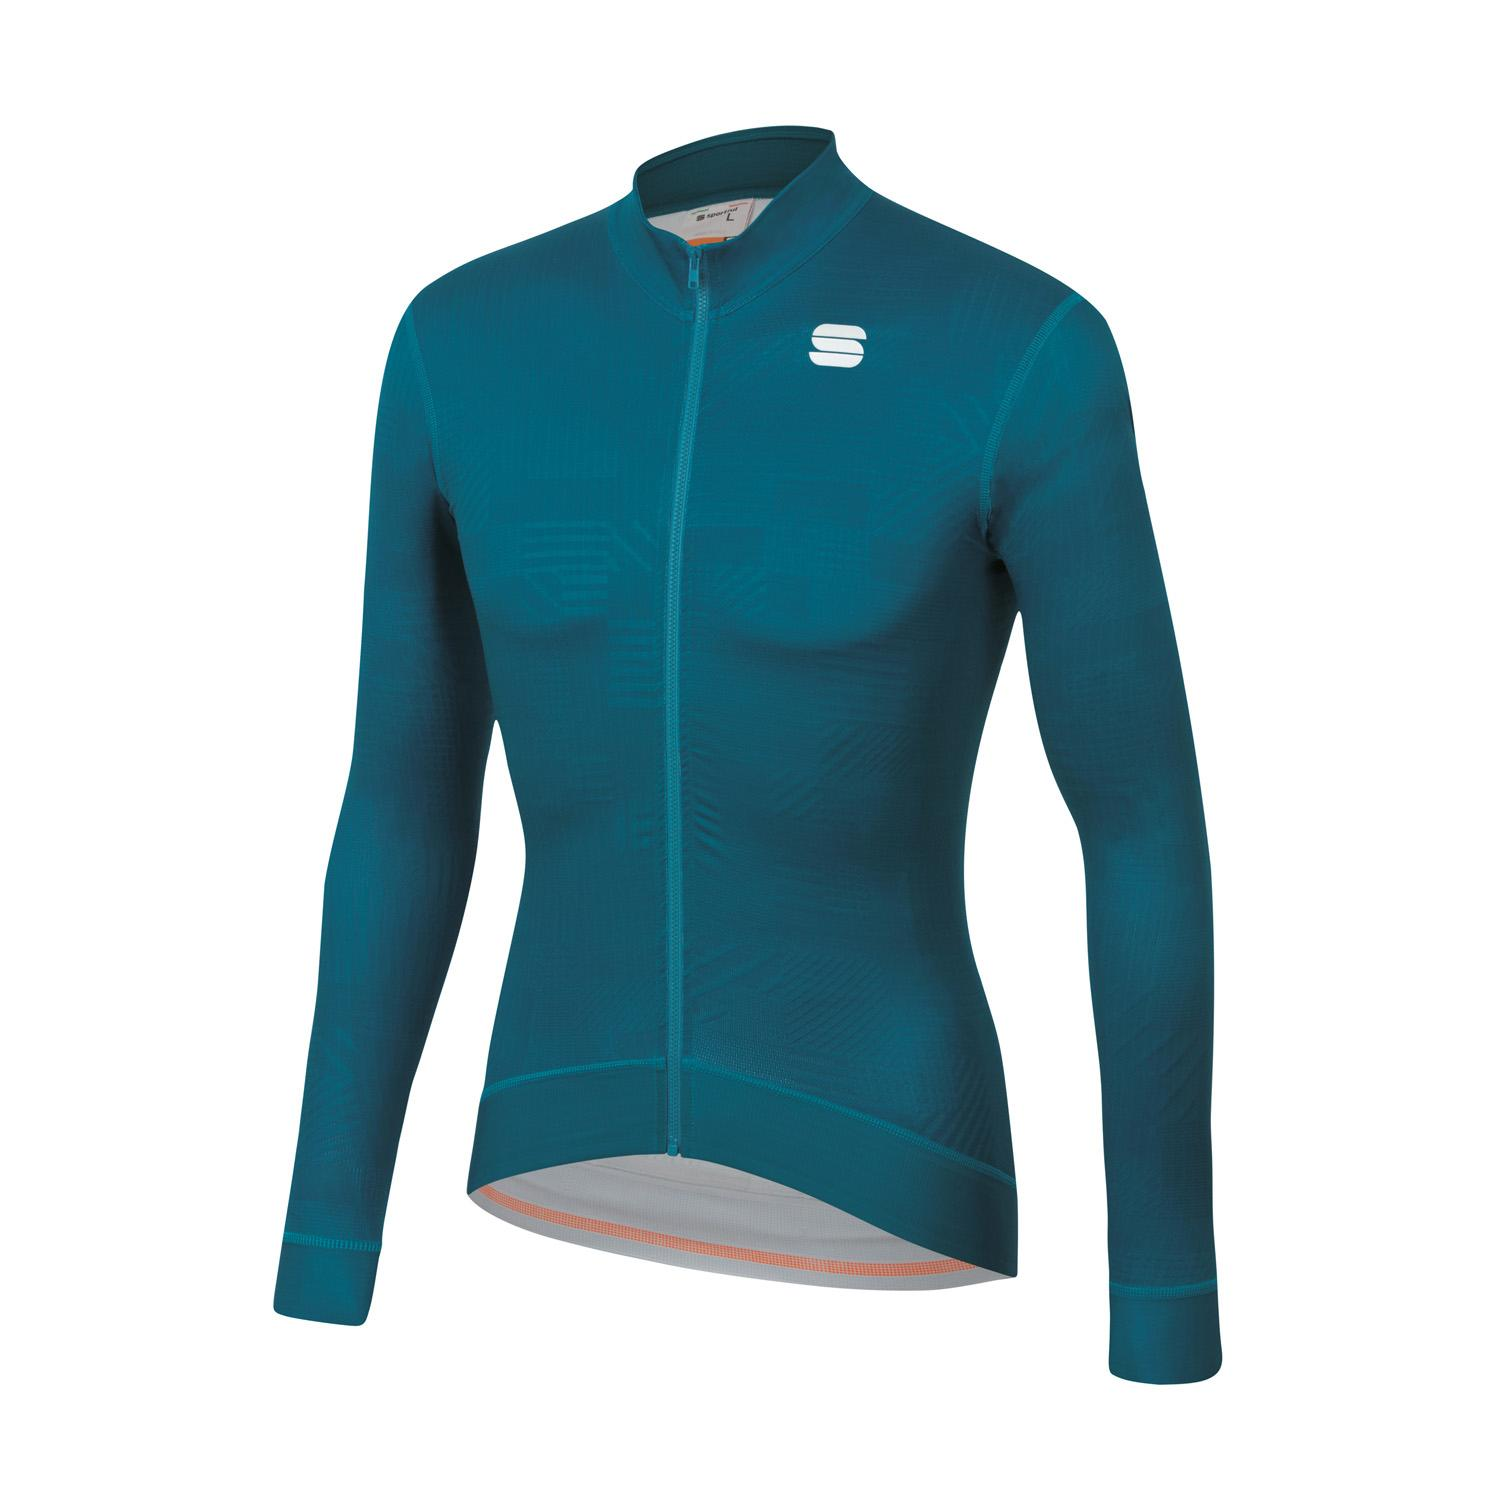 Sportful Fietsshirt lange mouwen Heren Blauw - LOOM THERMAL JERSEY BLUE CORSAIR